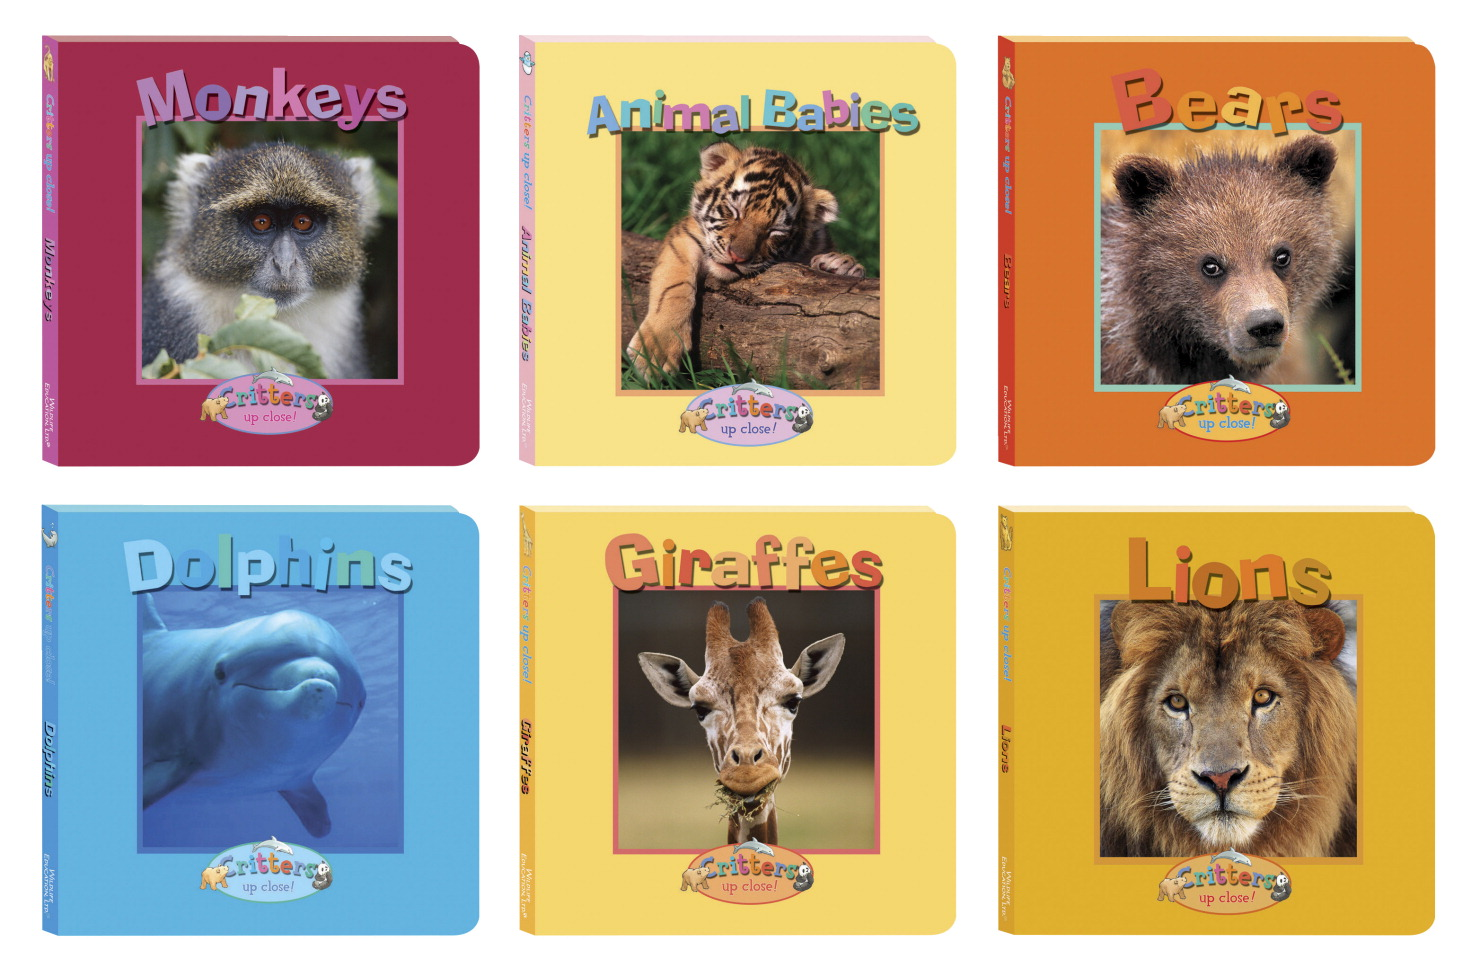 School Specialty Critters Up Close! Board Books